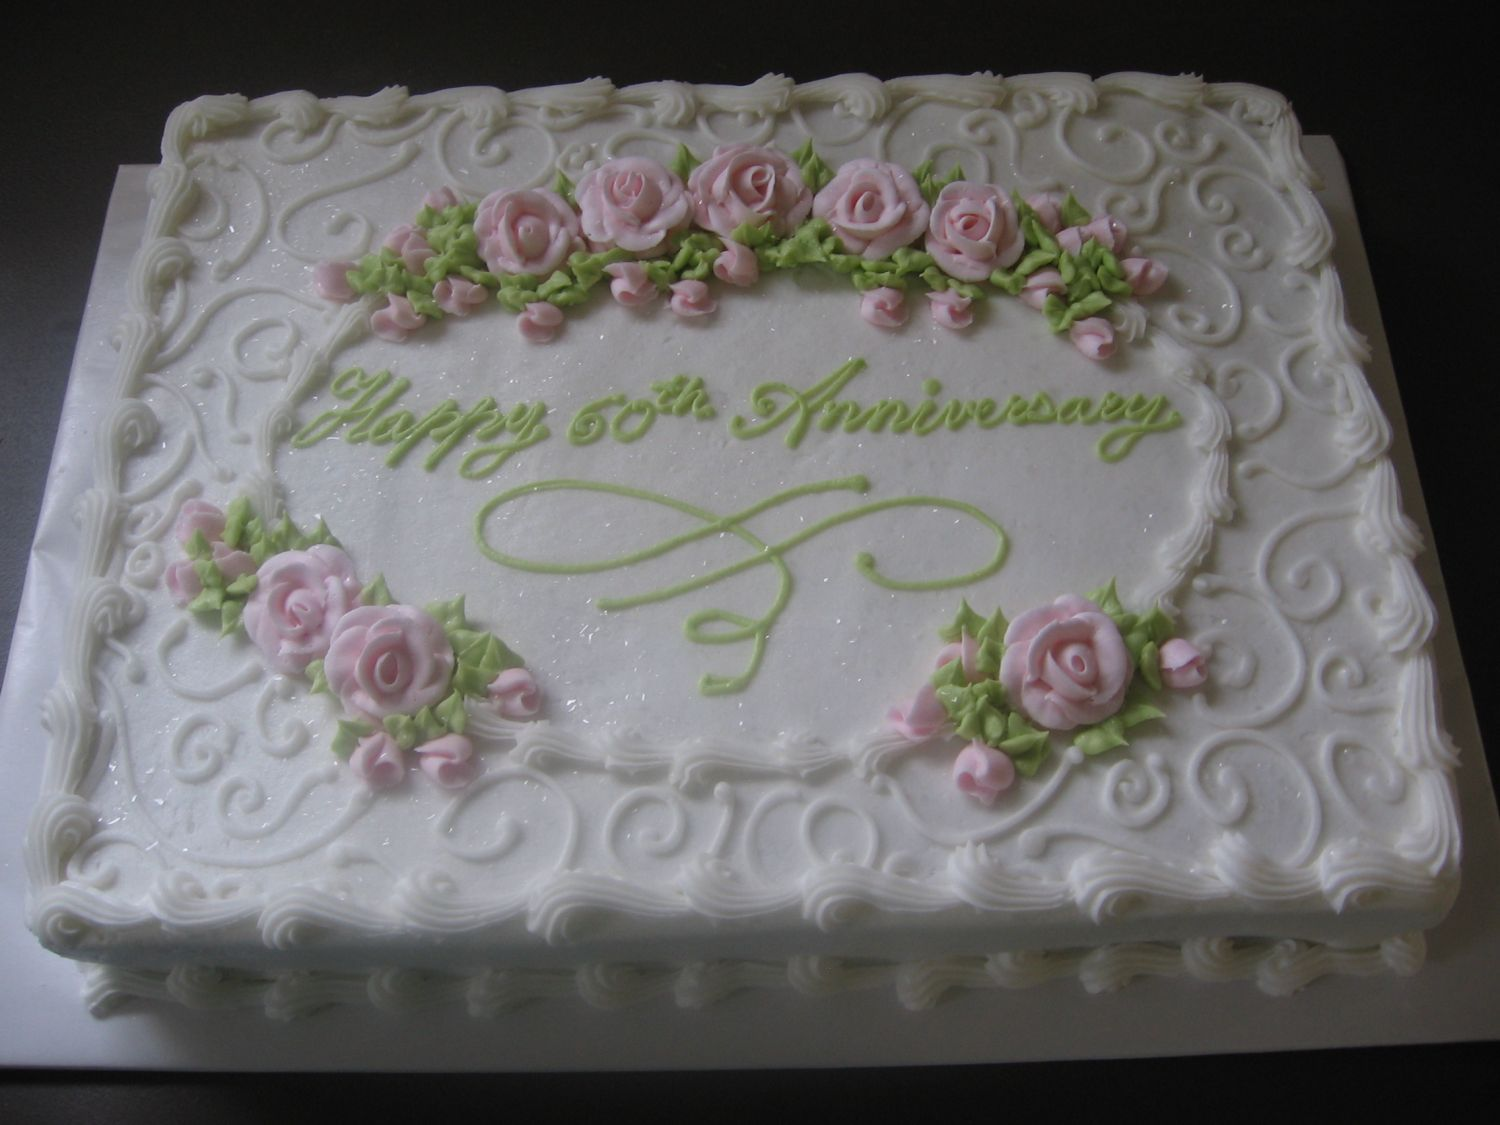 Anniversary this is an 11x15 sheet cake with pink royal